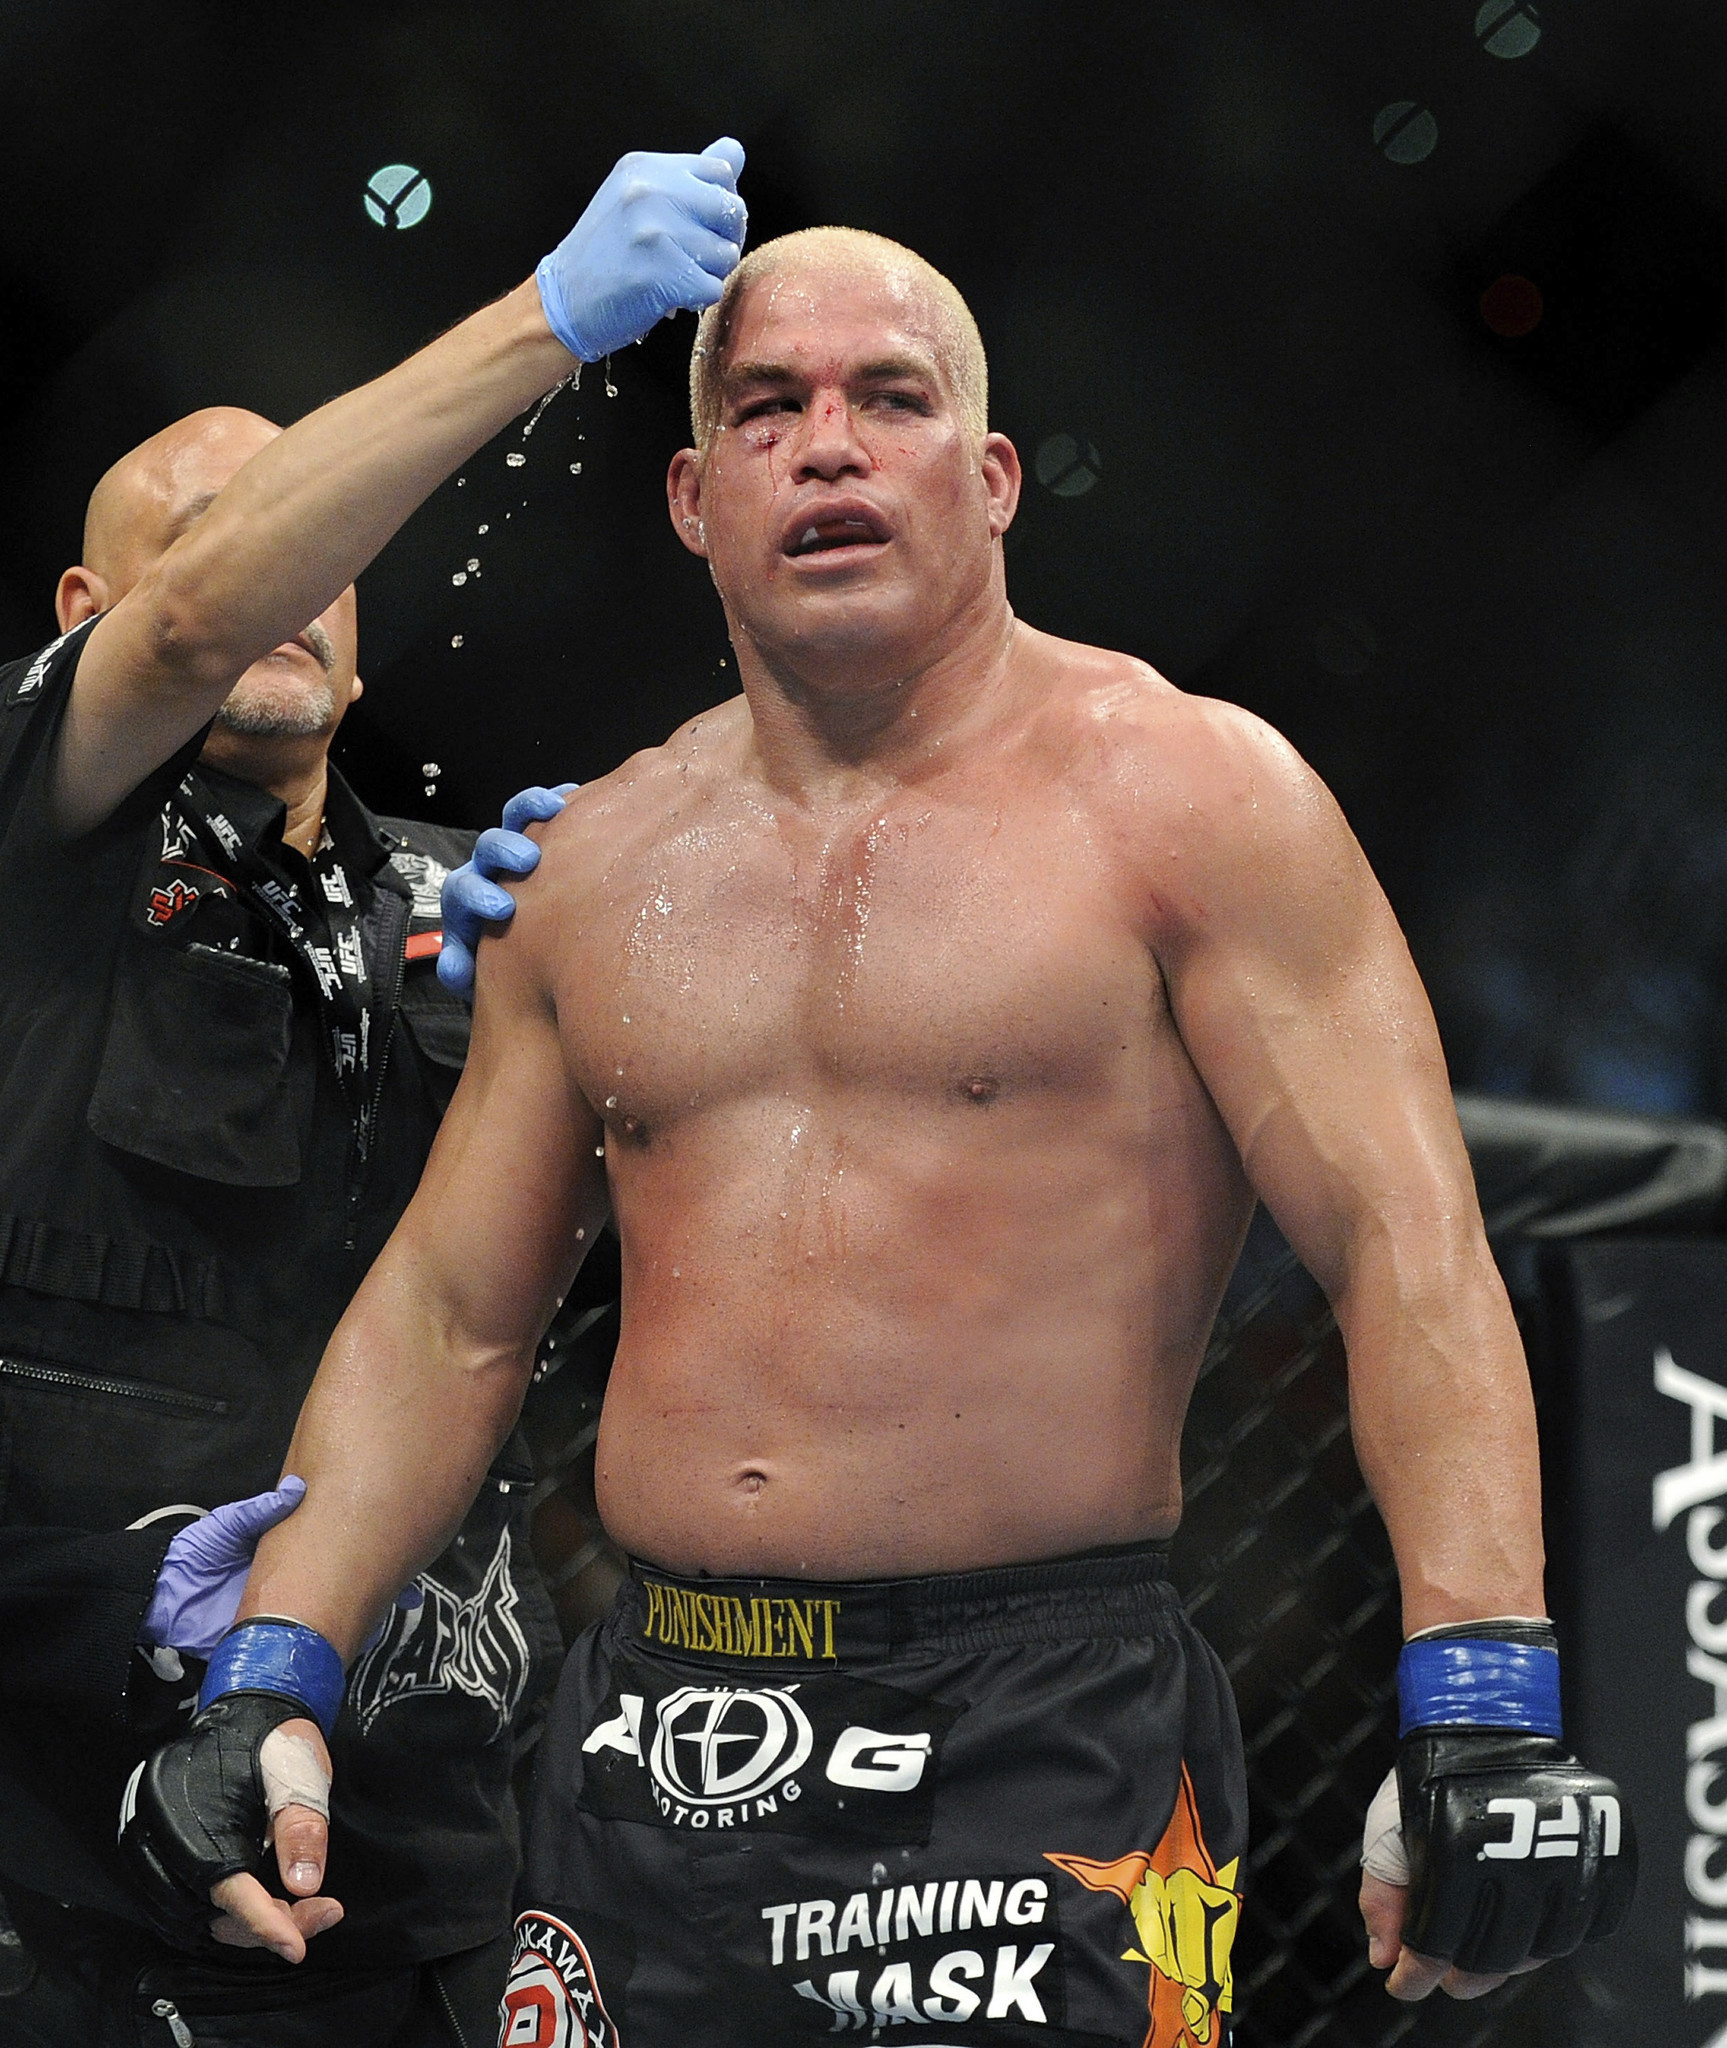 Tito Ortiz Chokes Out Chael Sonnen In 1st Round To Wrap Up